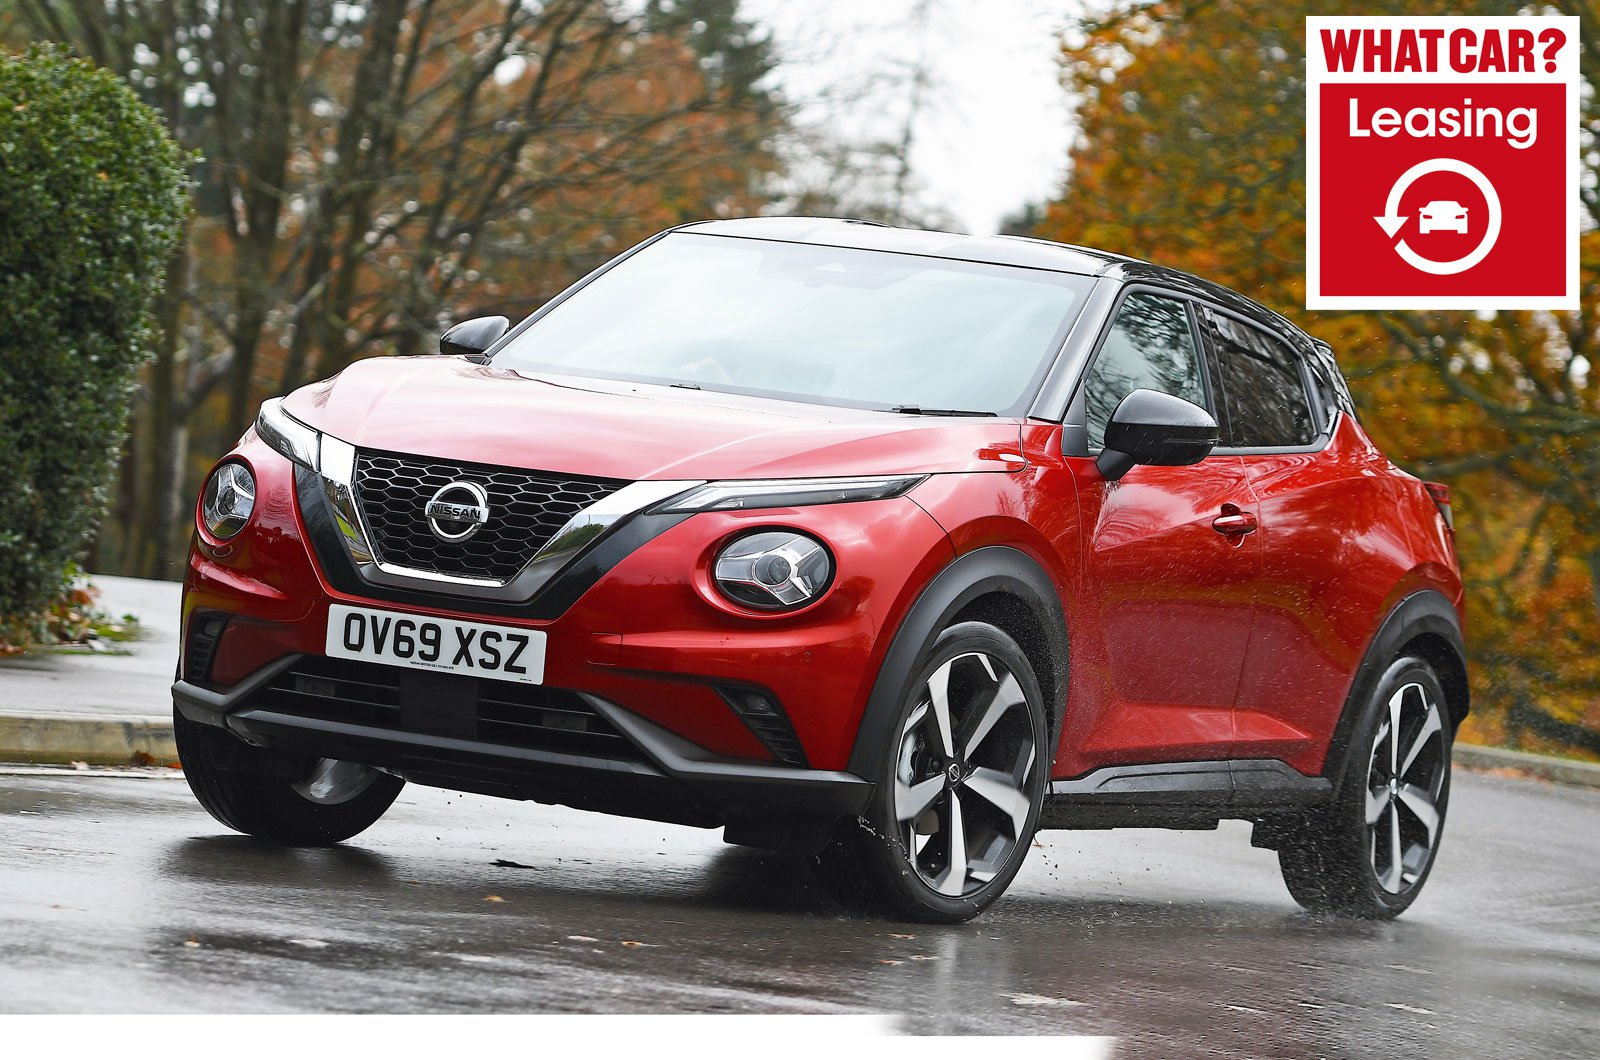 Nissan Juke with What Car? Leasing logo